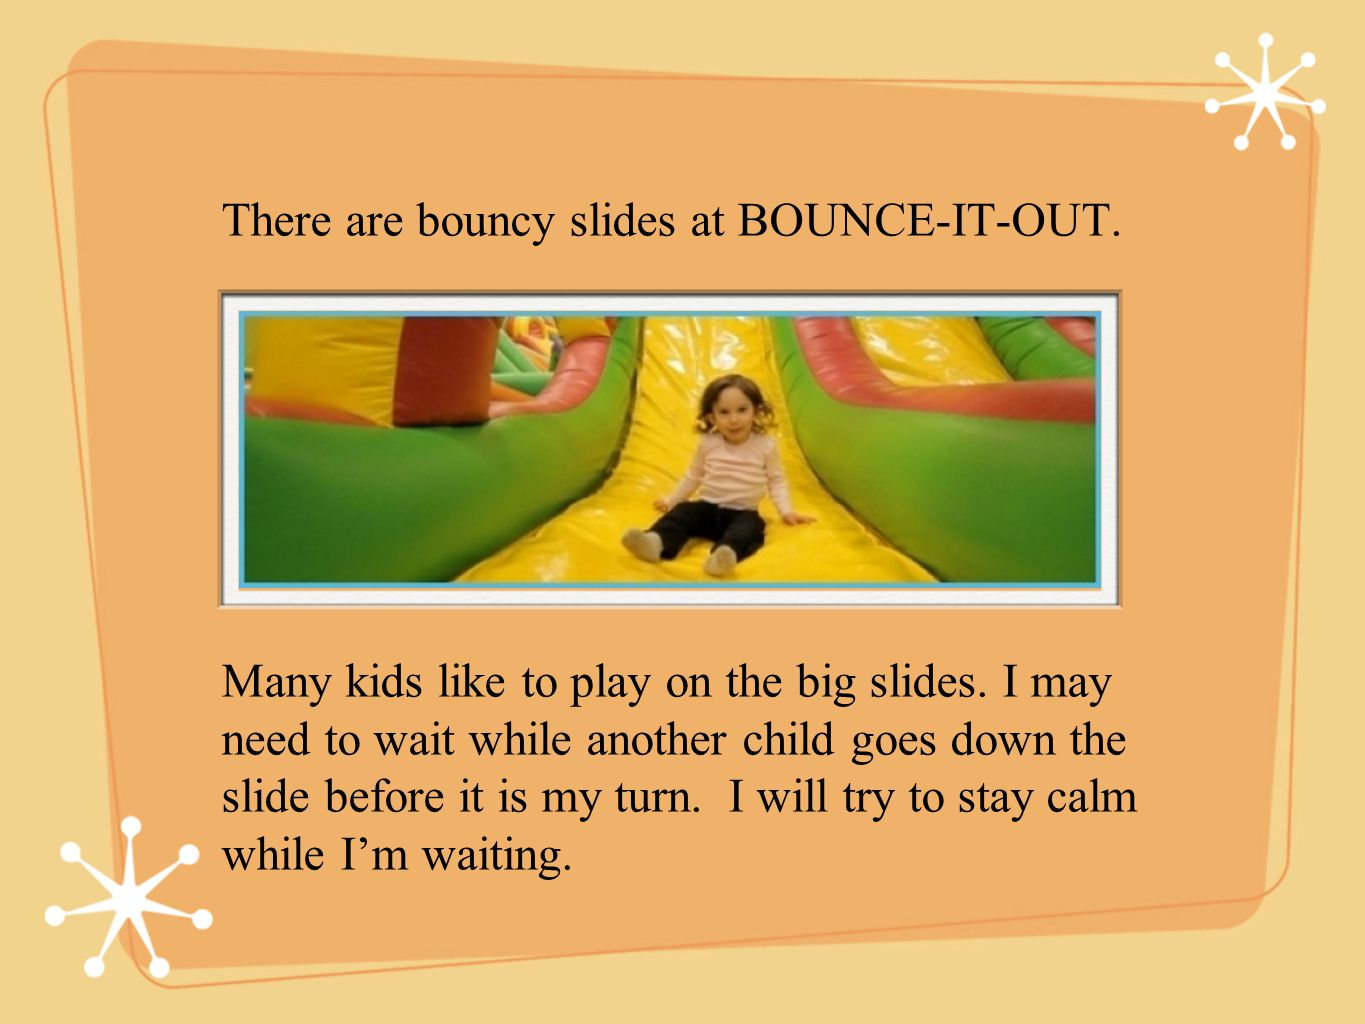 There are bouncy slides at BOUNCE-IT-OUT. Many kids like to play on the big slides.